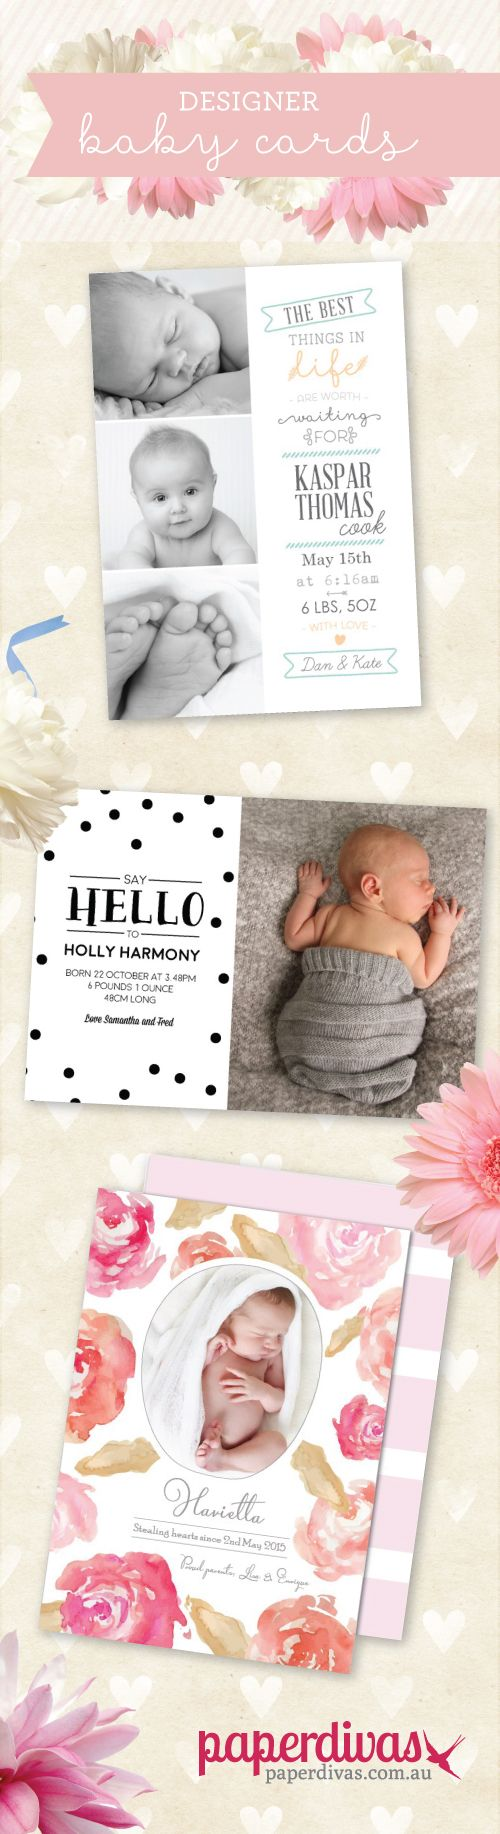 Beautiful Designer Birth Announcement cards from only $1 each!  #baby #newborn #birthannoucement #designer #DIY #trendingbaby